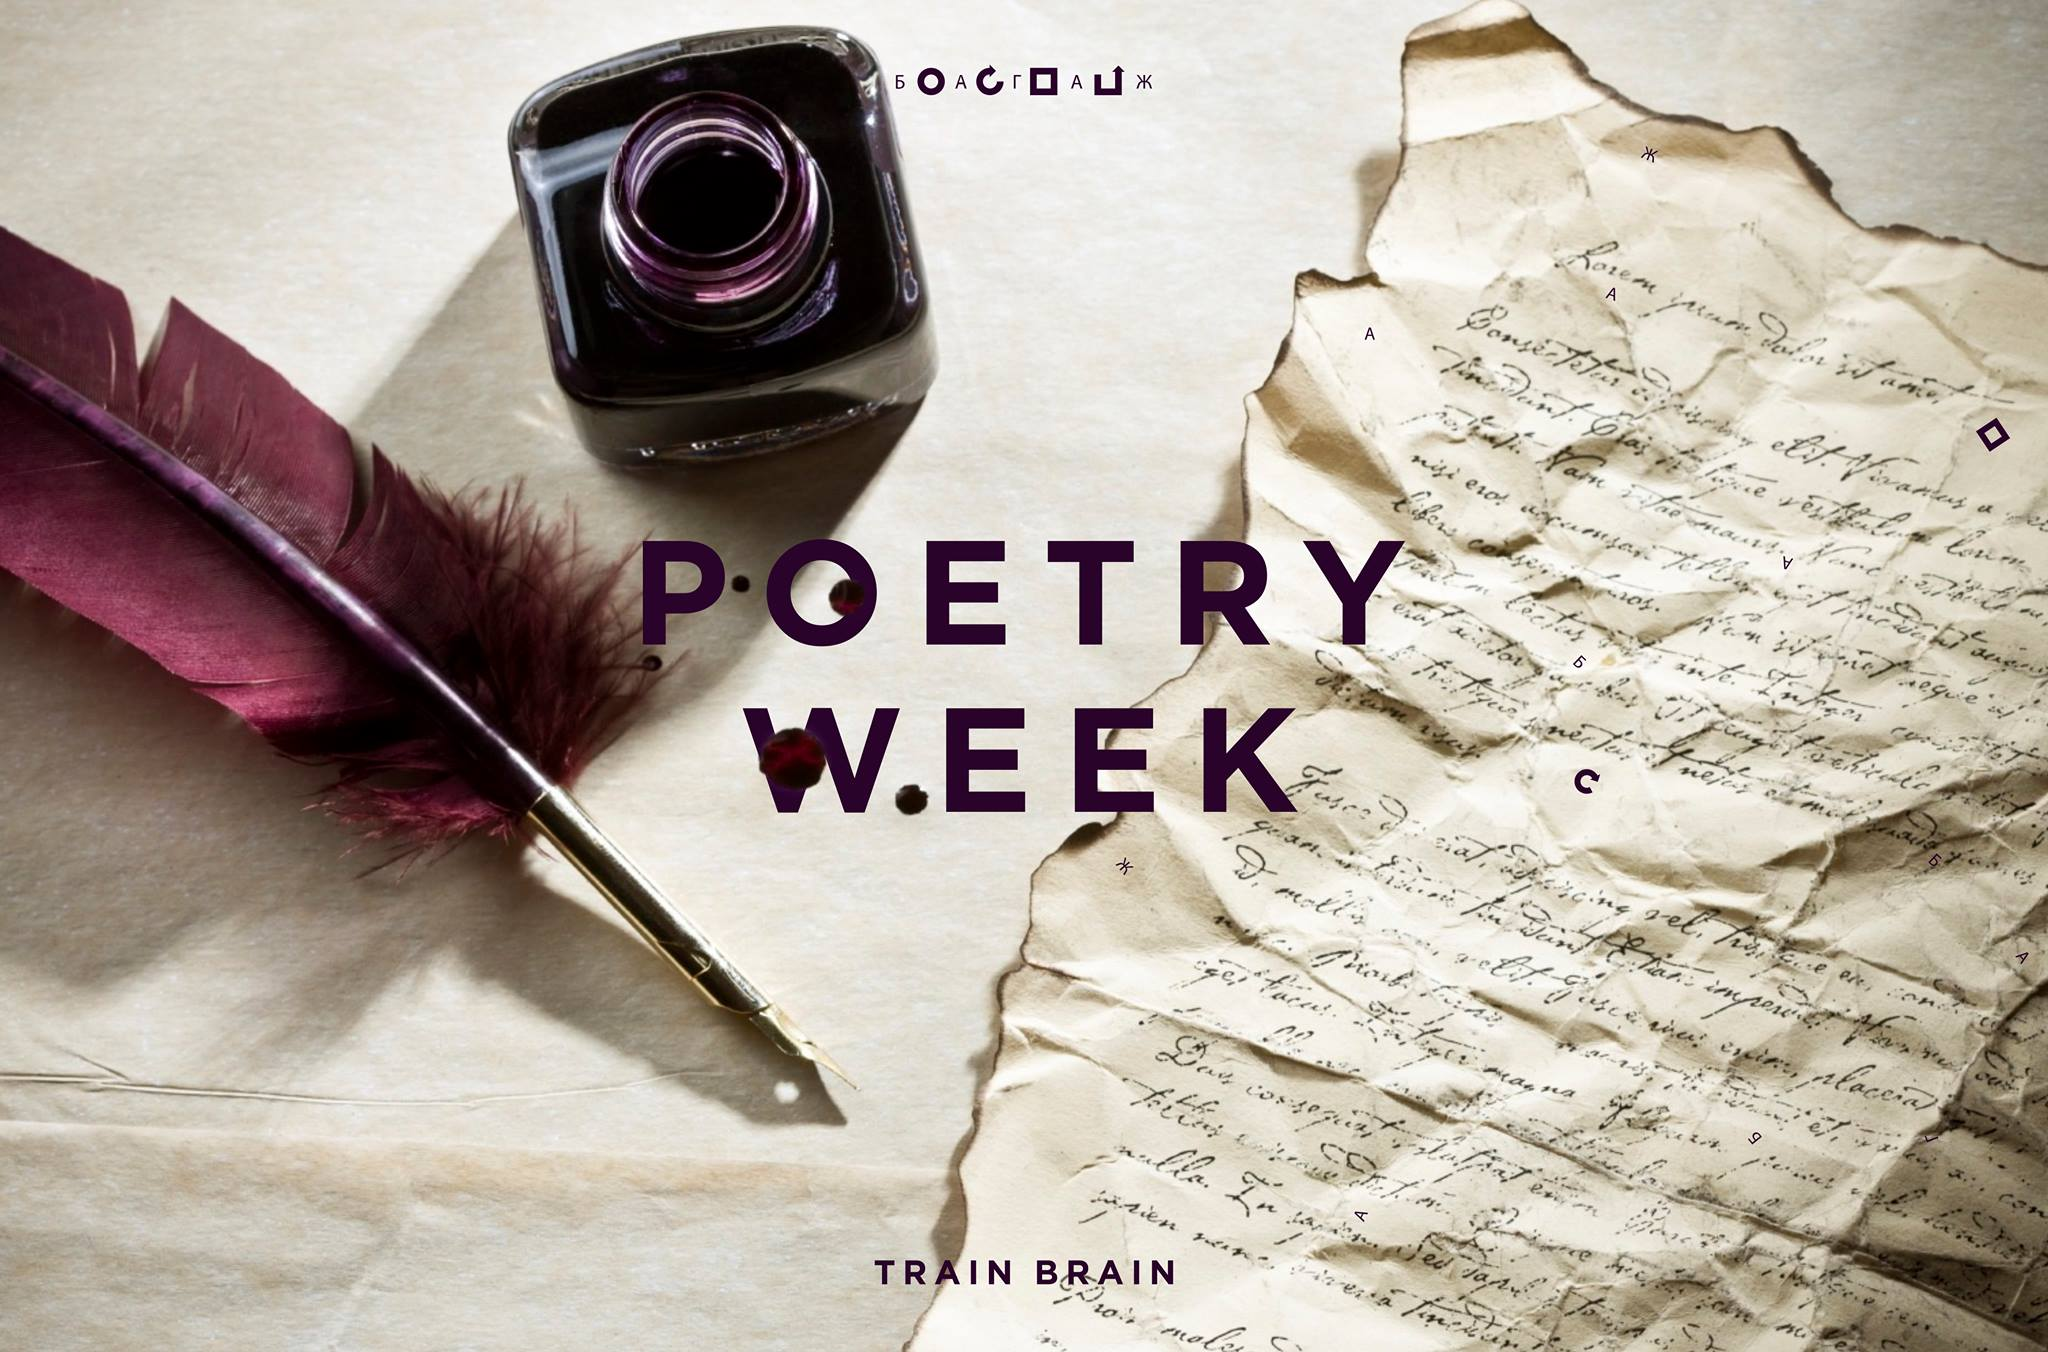 11_september_2016_POETRY WEEK